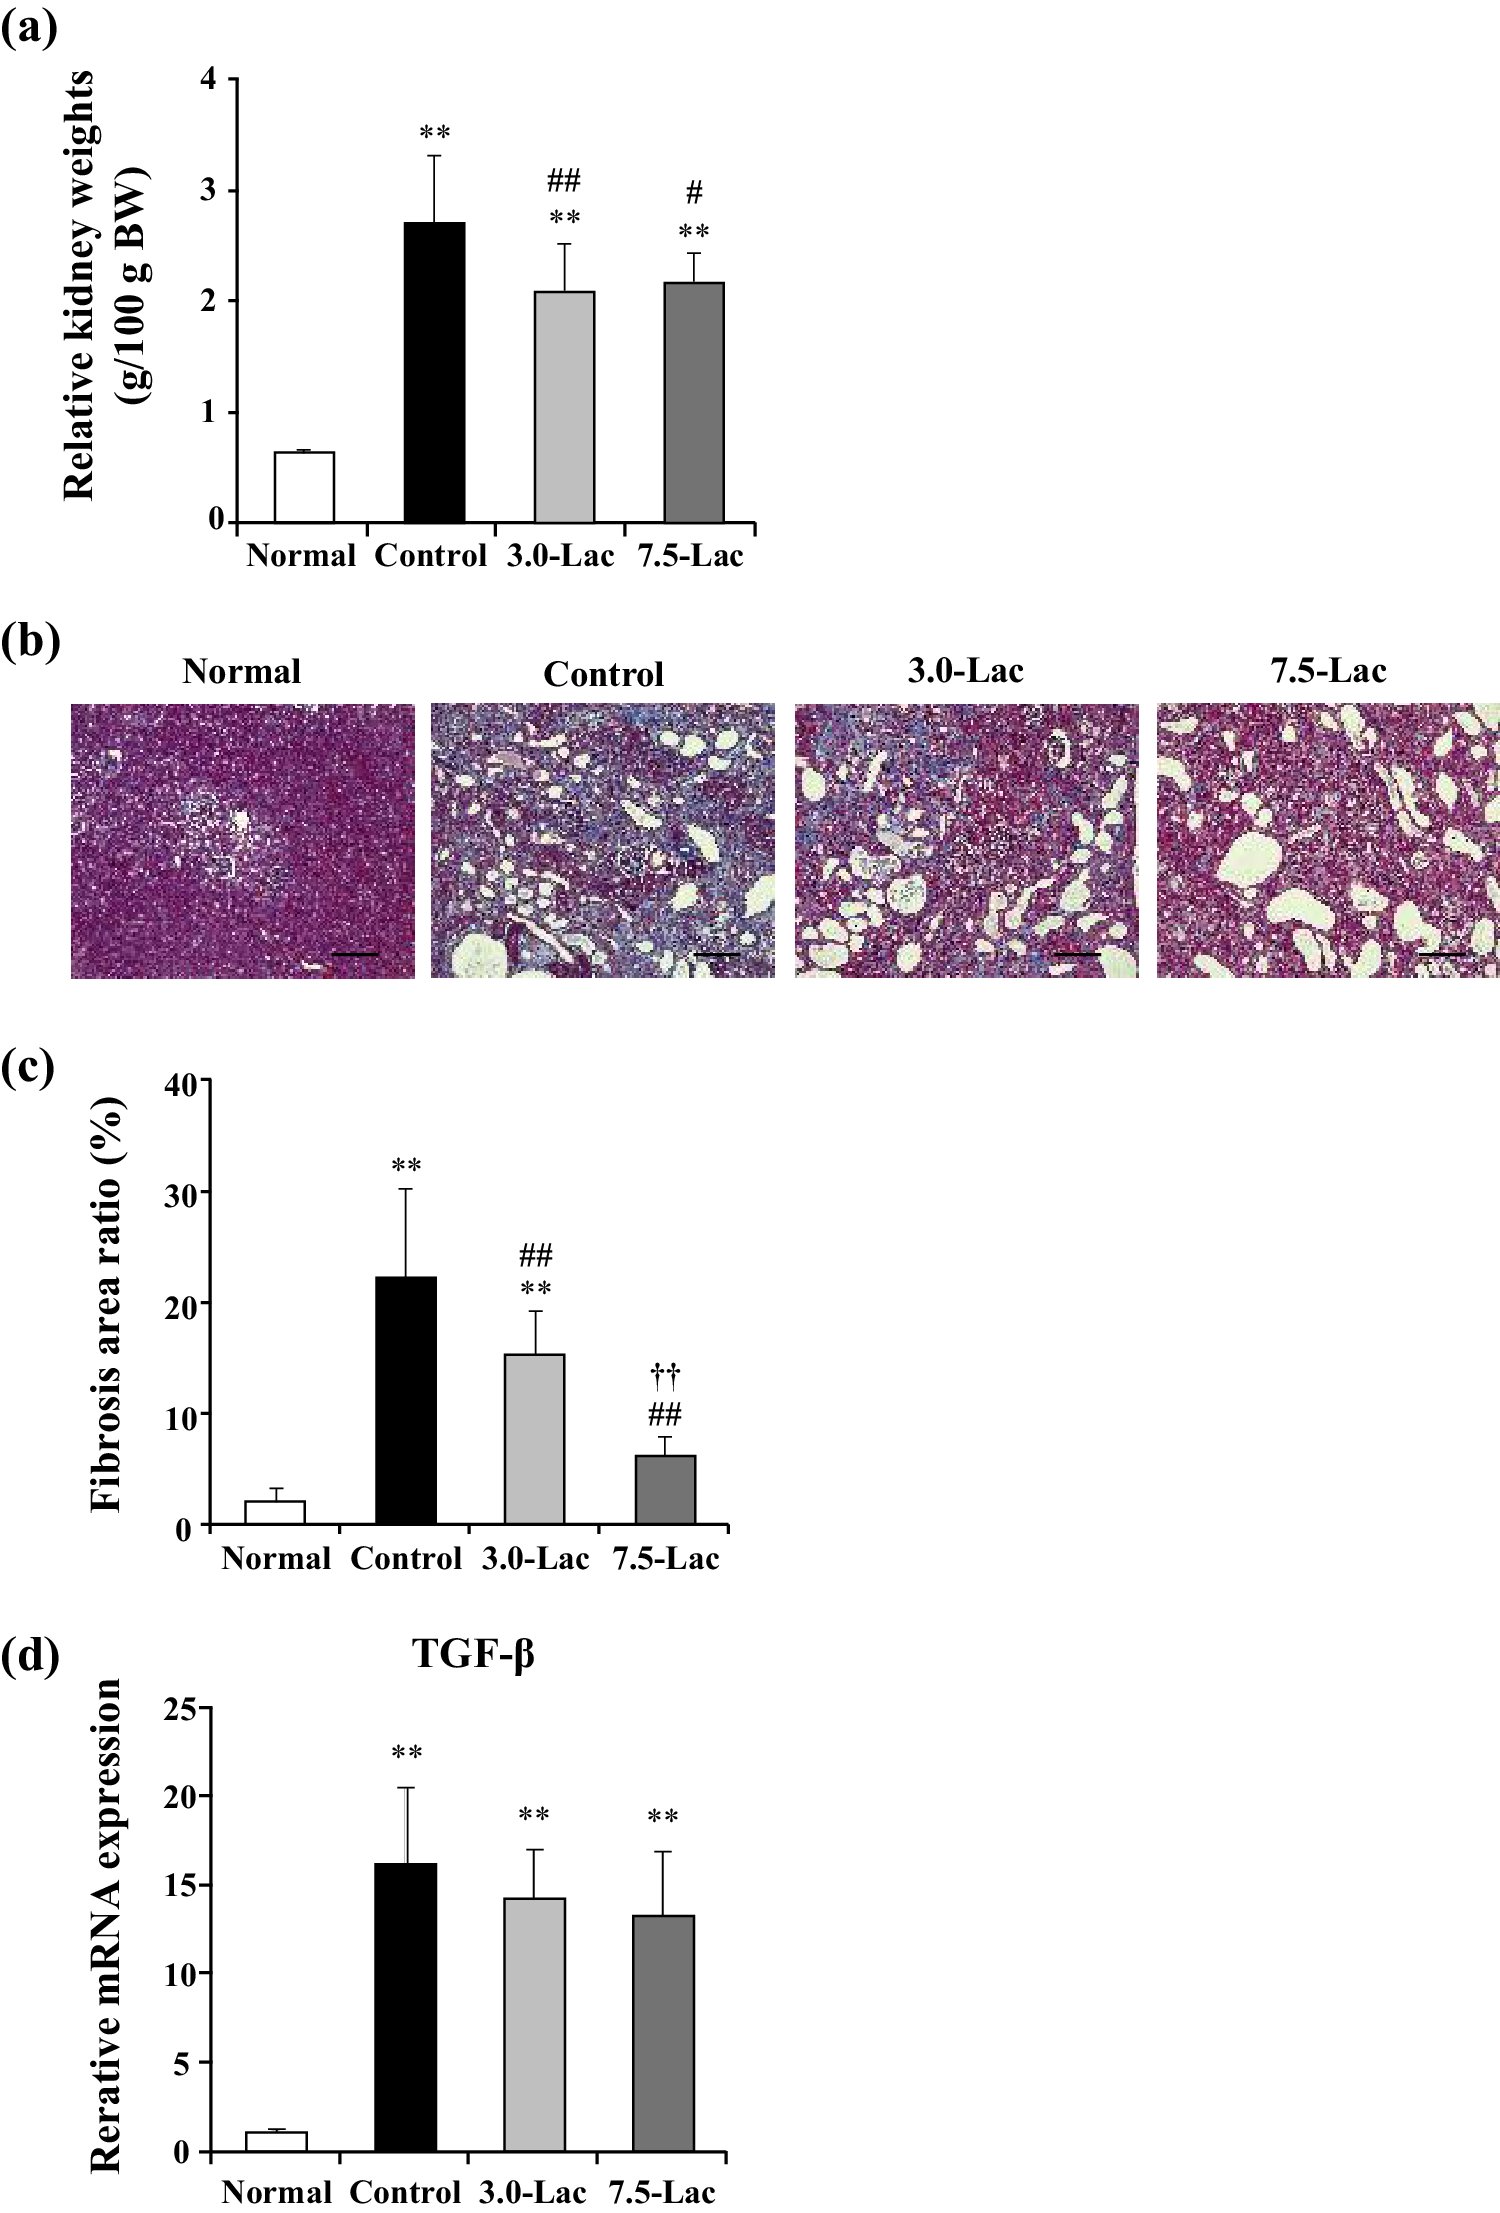 Effects of lactulose on renal function and gut microbiota in